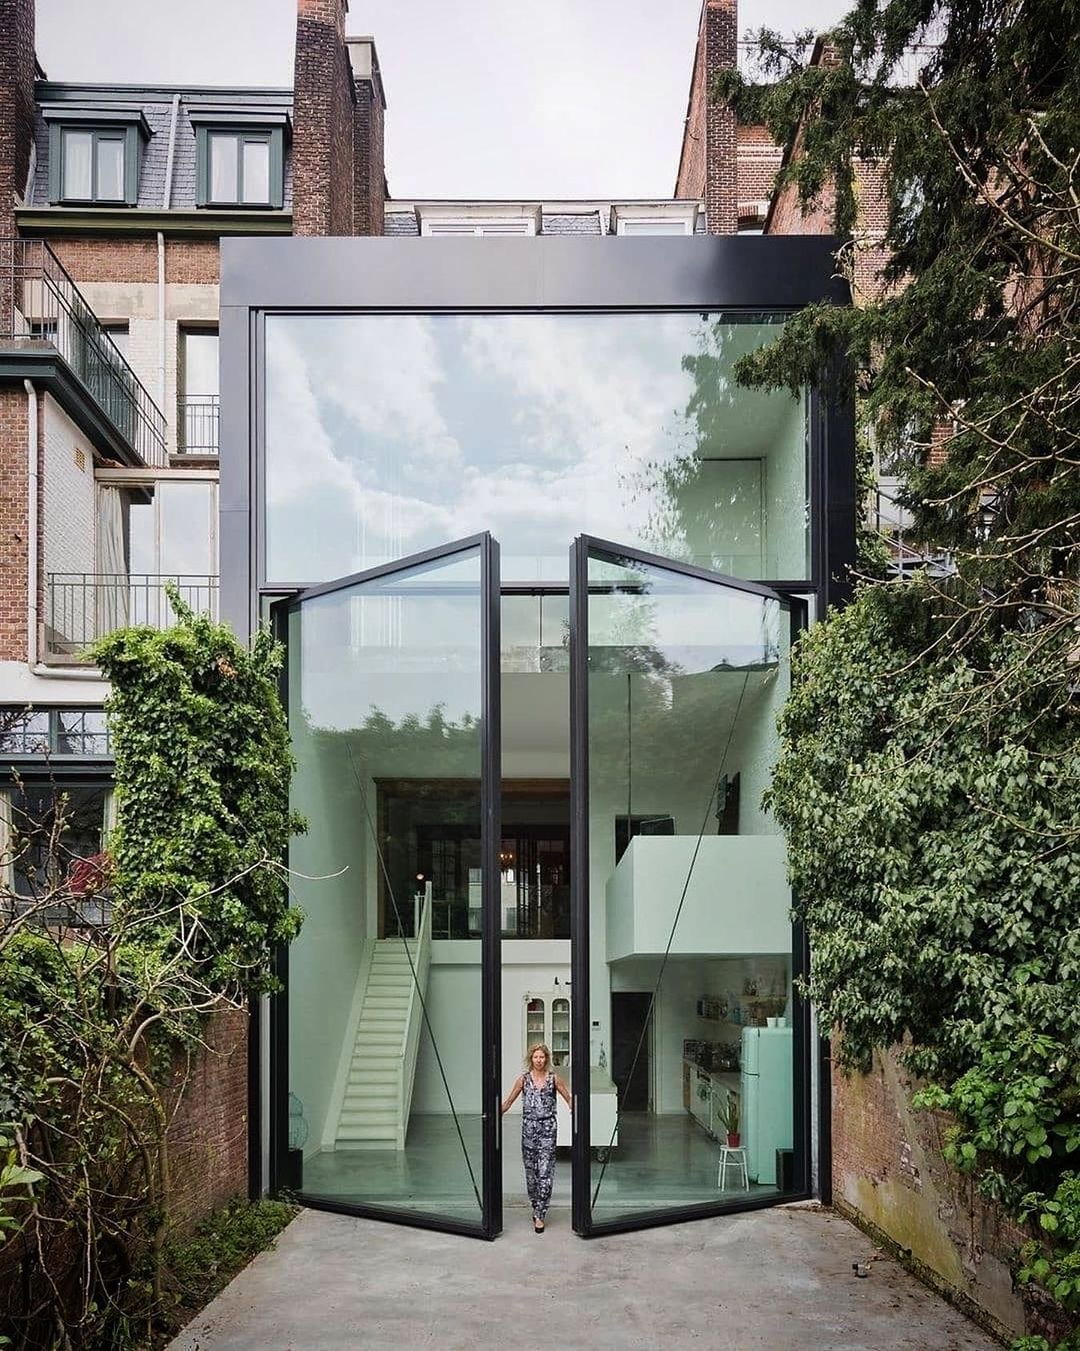 Image of pivot patio doors by @nuprojects.co